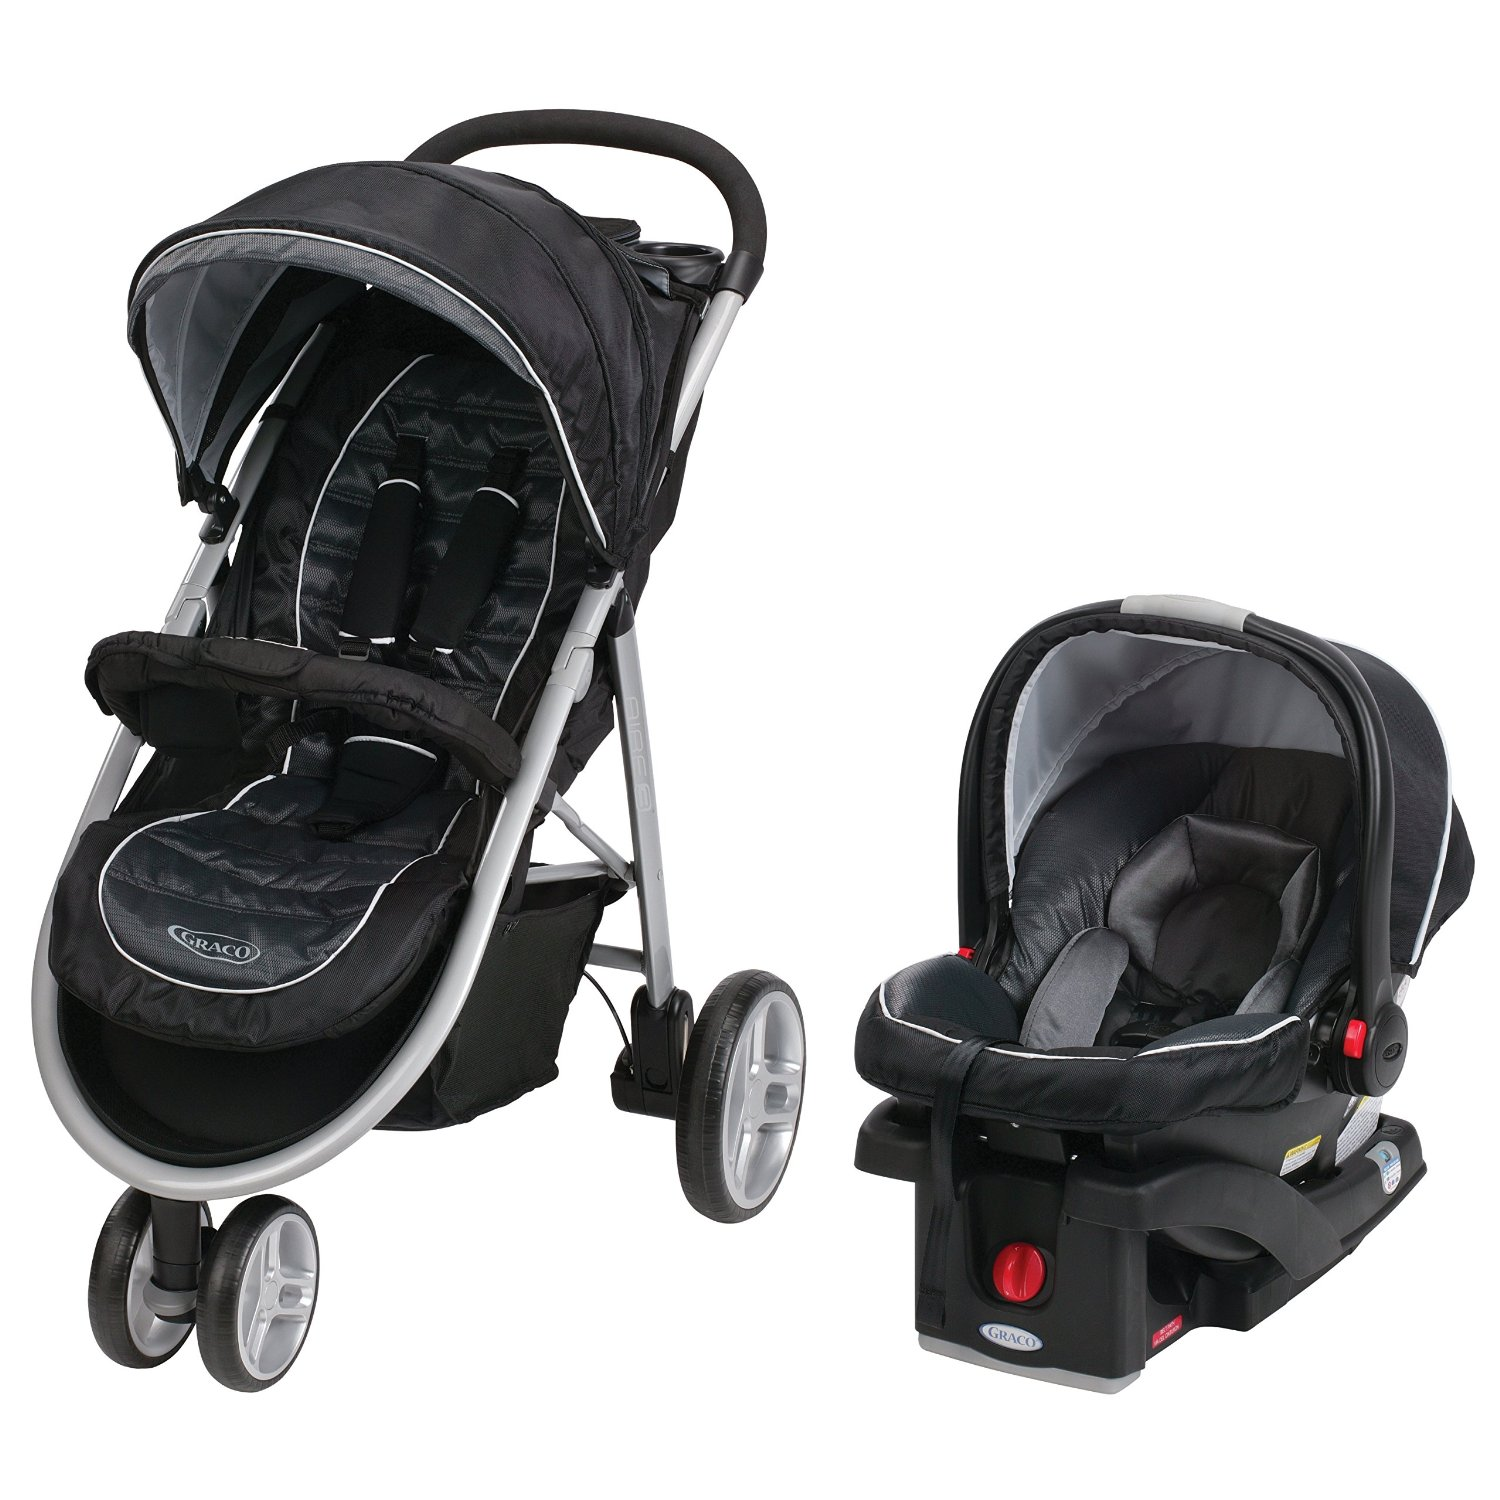 Gracious Graco Travel System Reviews Omg Stroller Graco Click Connect Stroller Gotham Graco Click Connect Stroller Babies R Us baby Graco Click Connect Double Stroller